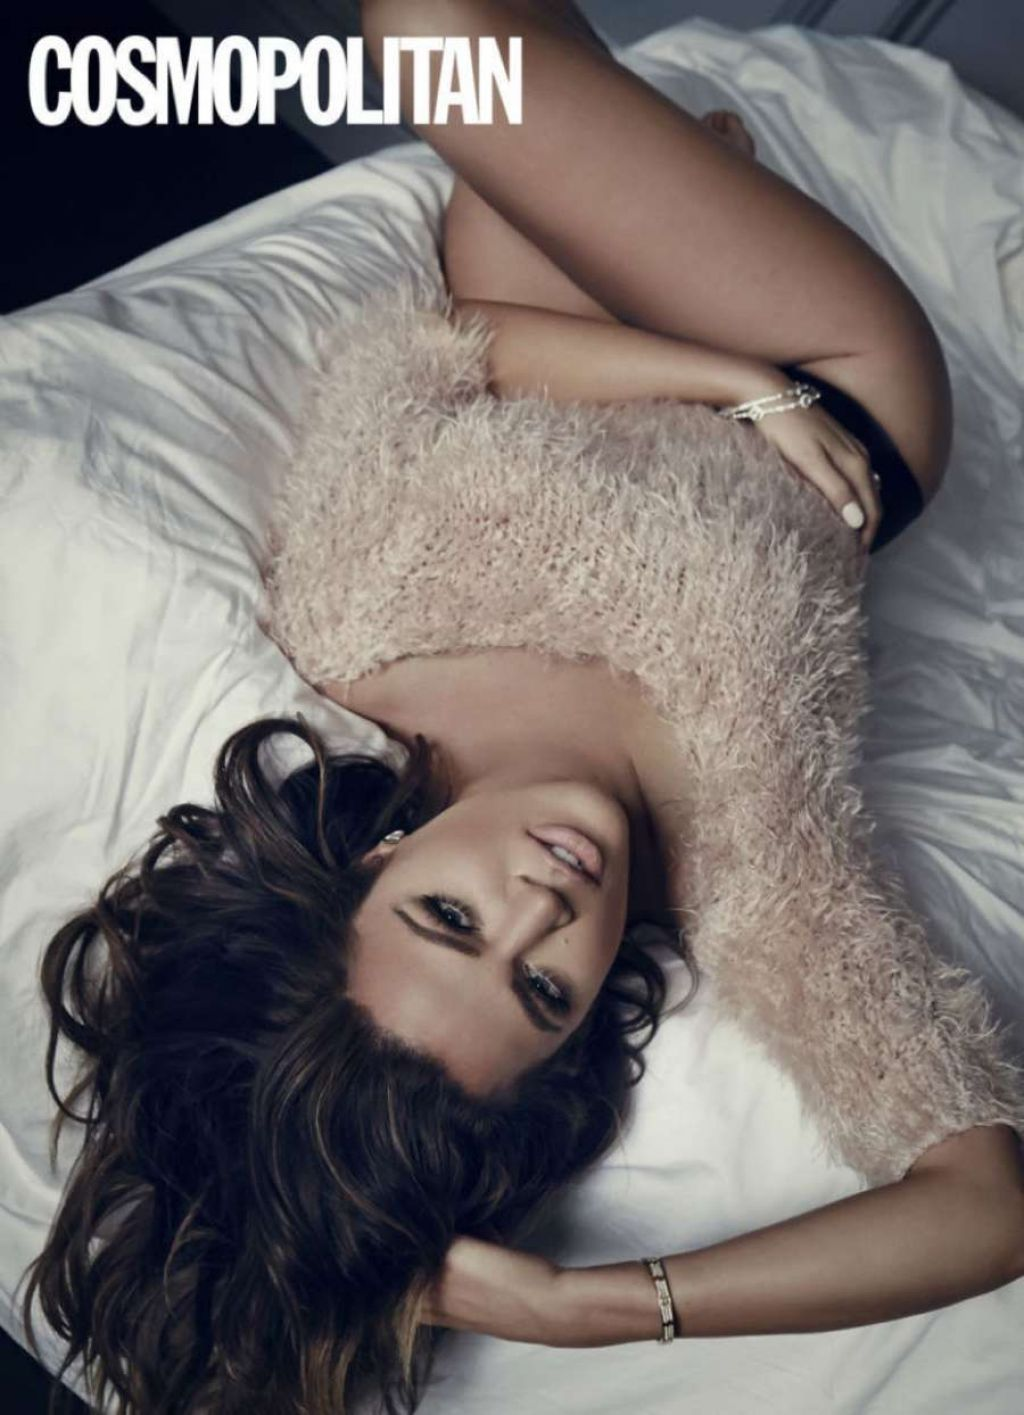 khloe-kardashian-cosmopolitan-magazine-uk-february-2015-issue_5